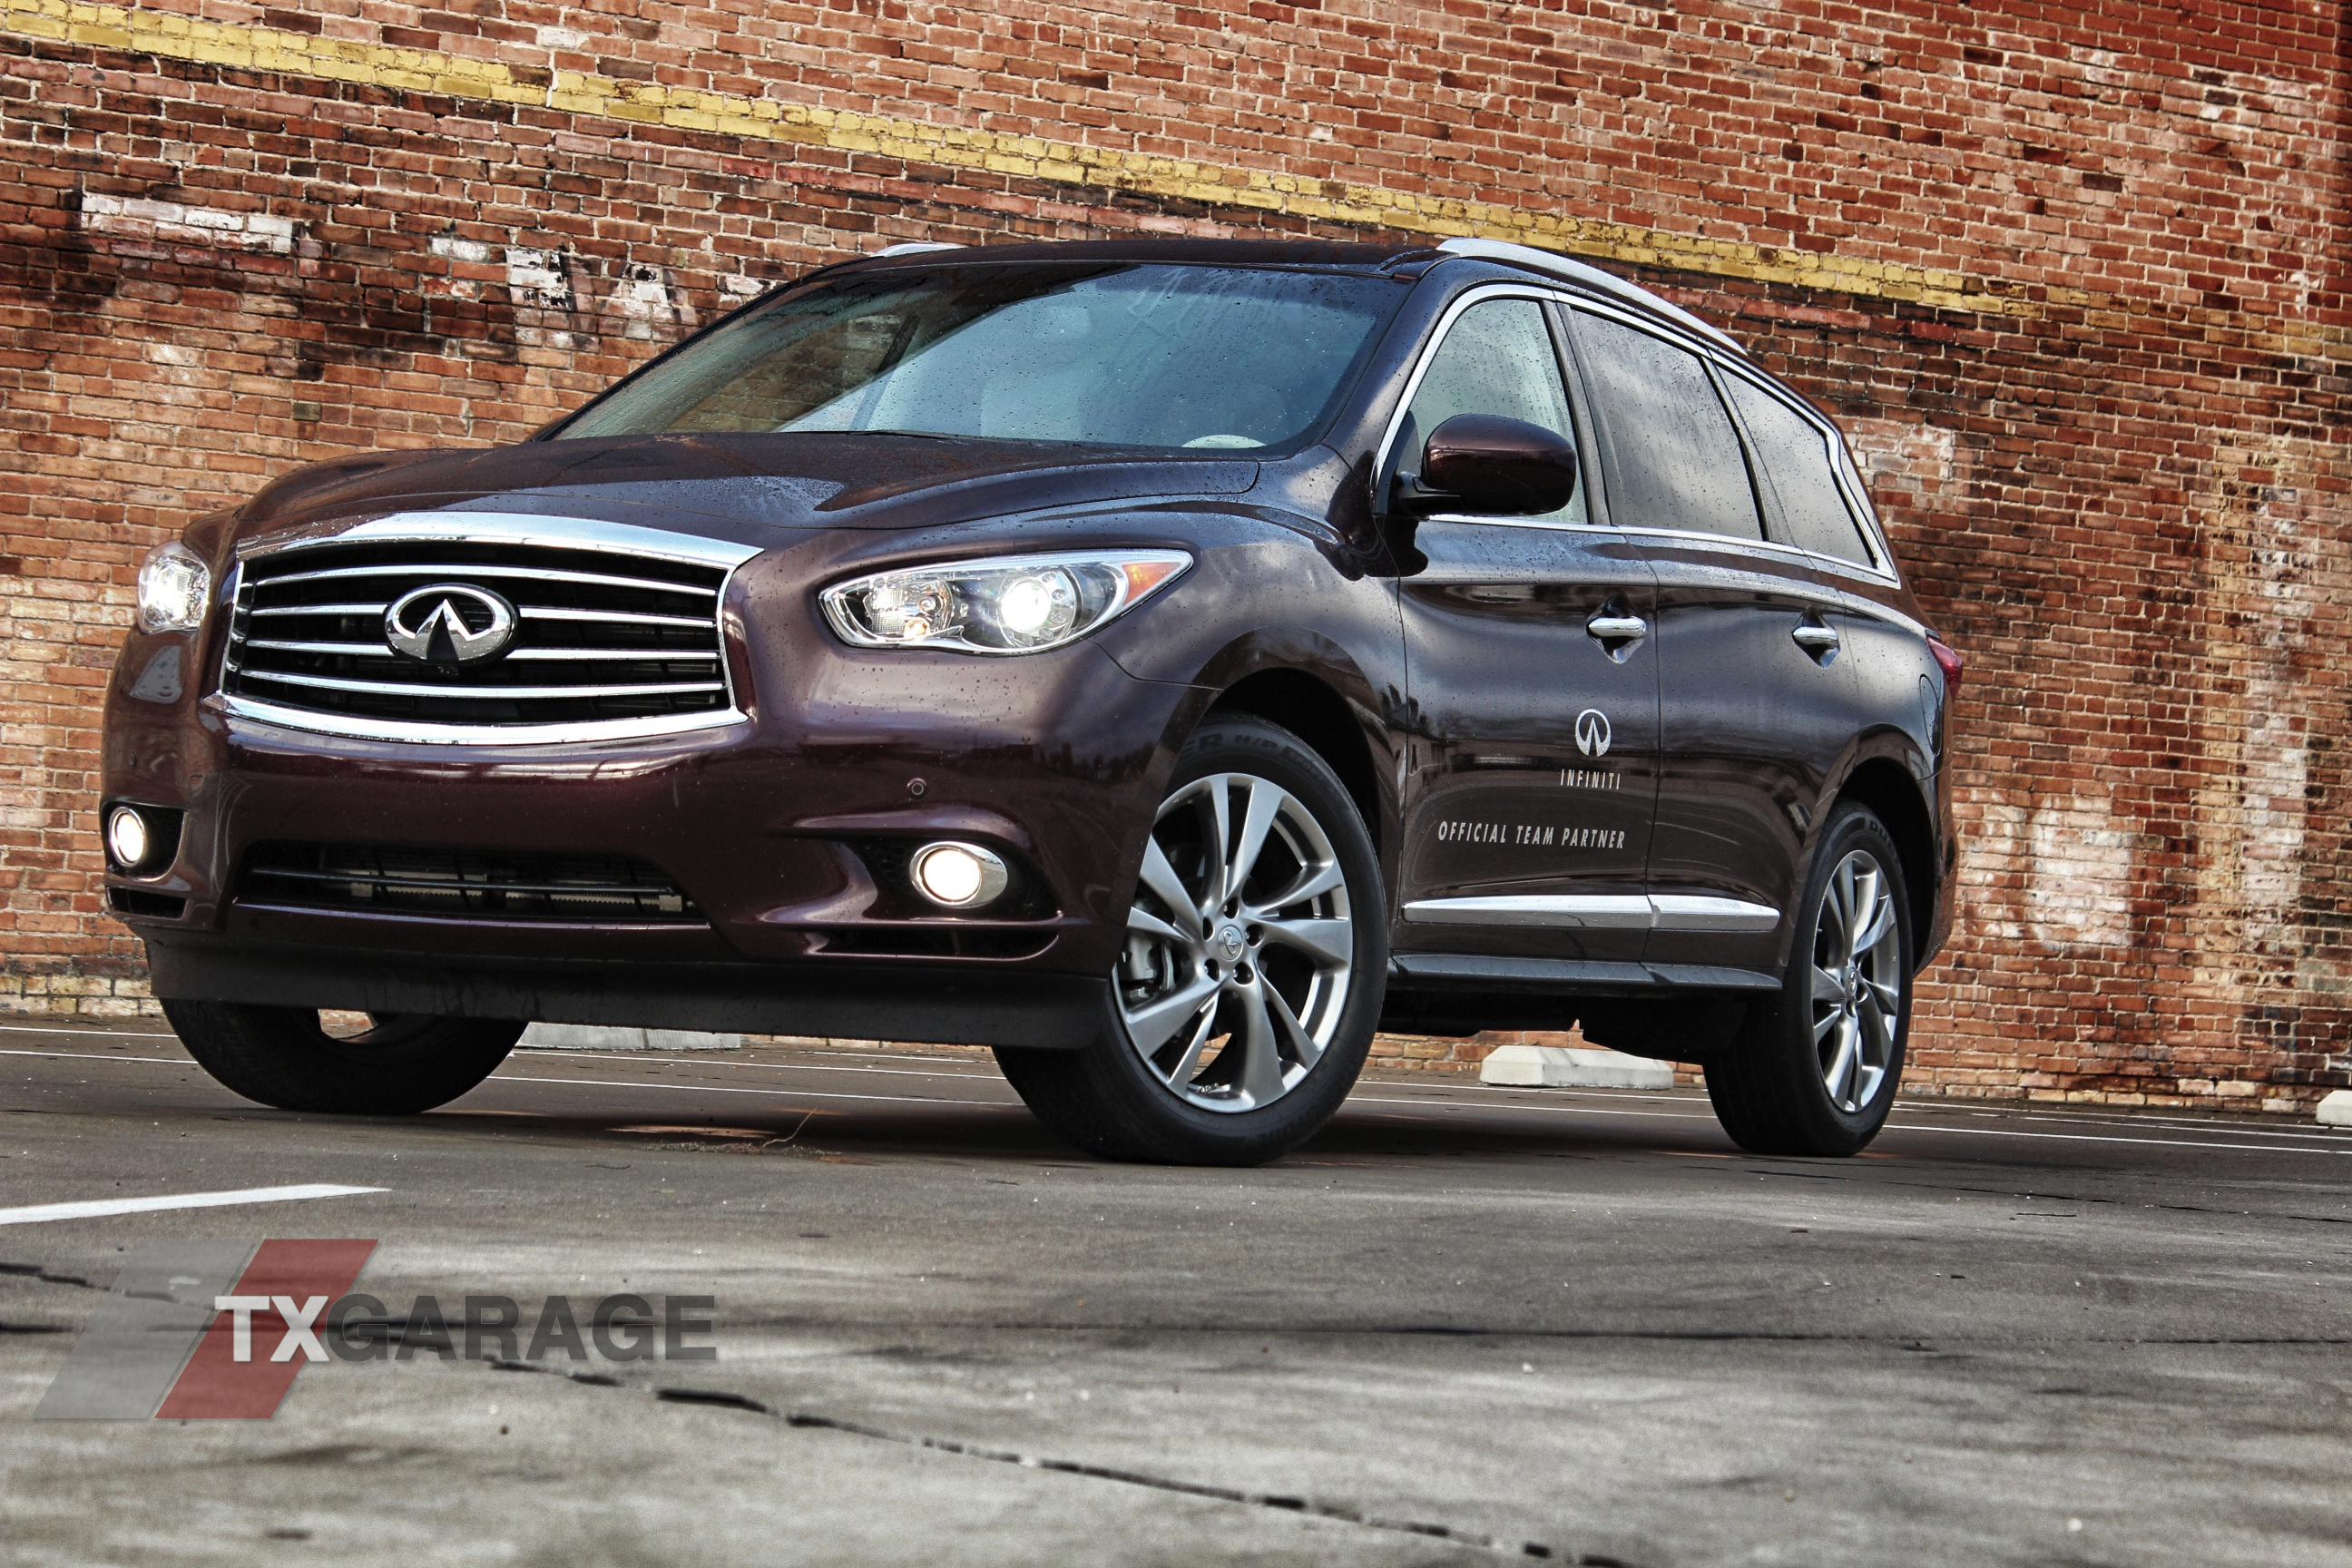 four update infinity automobile view june infiniti news front seasons the left